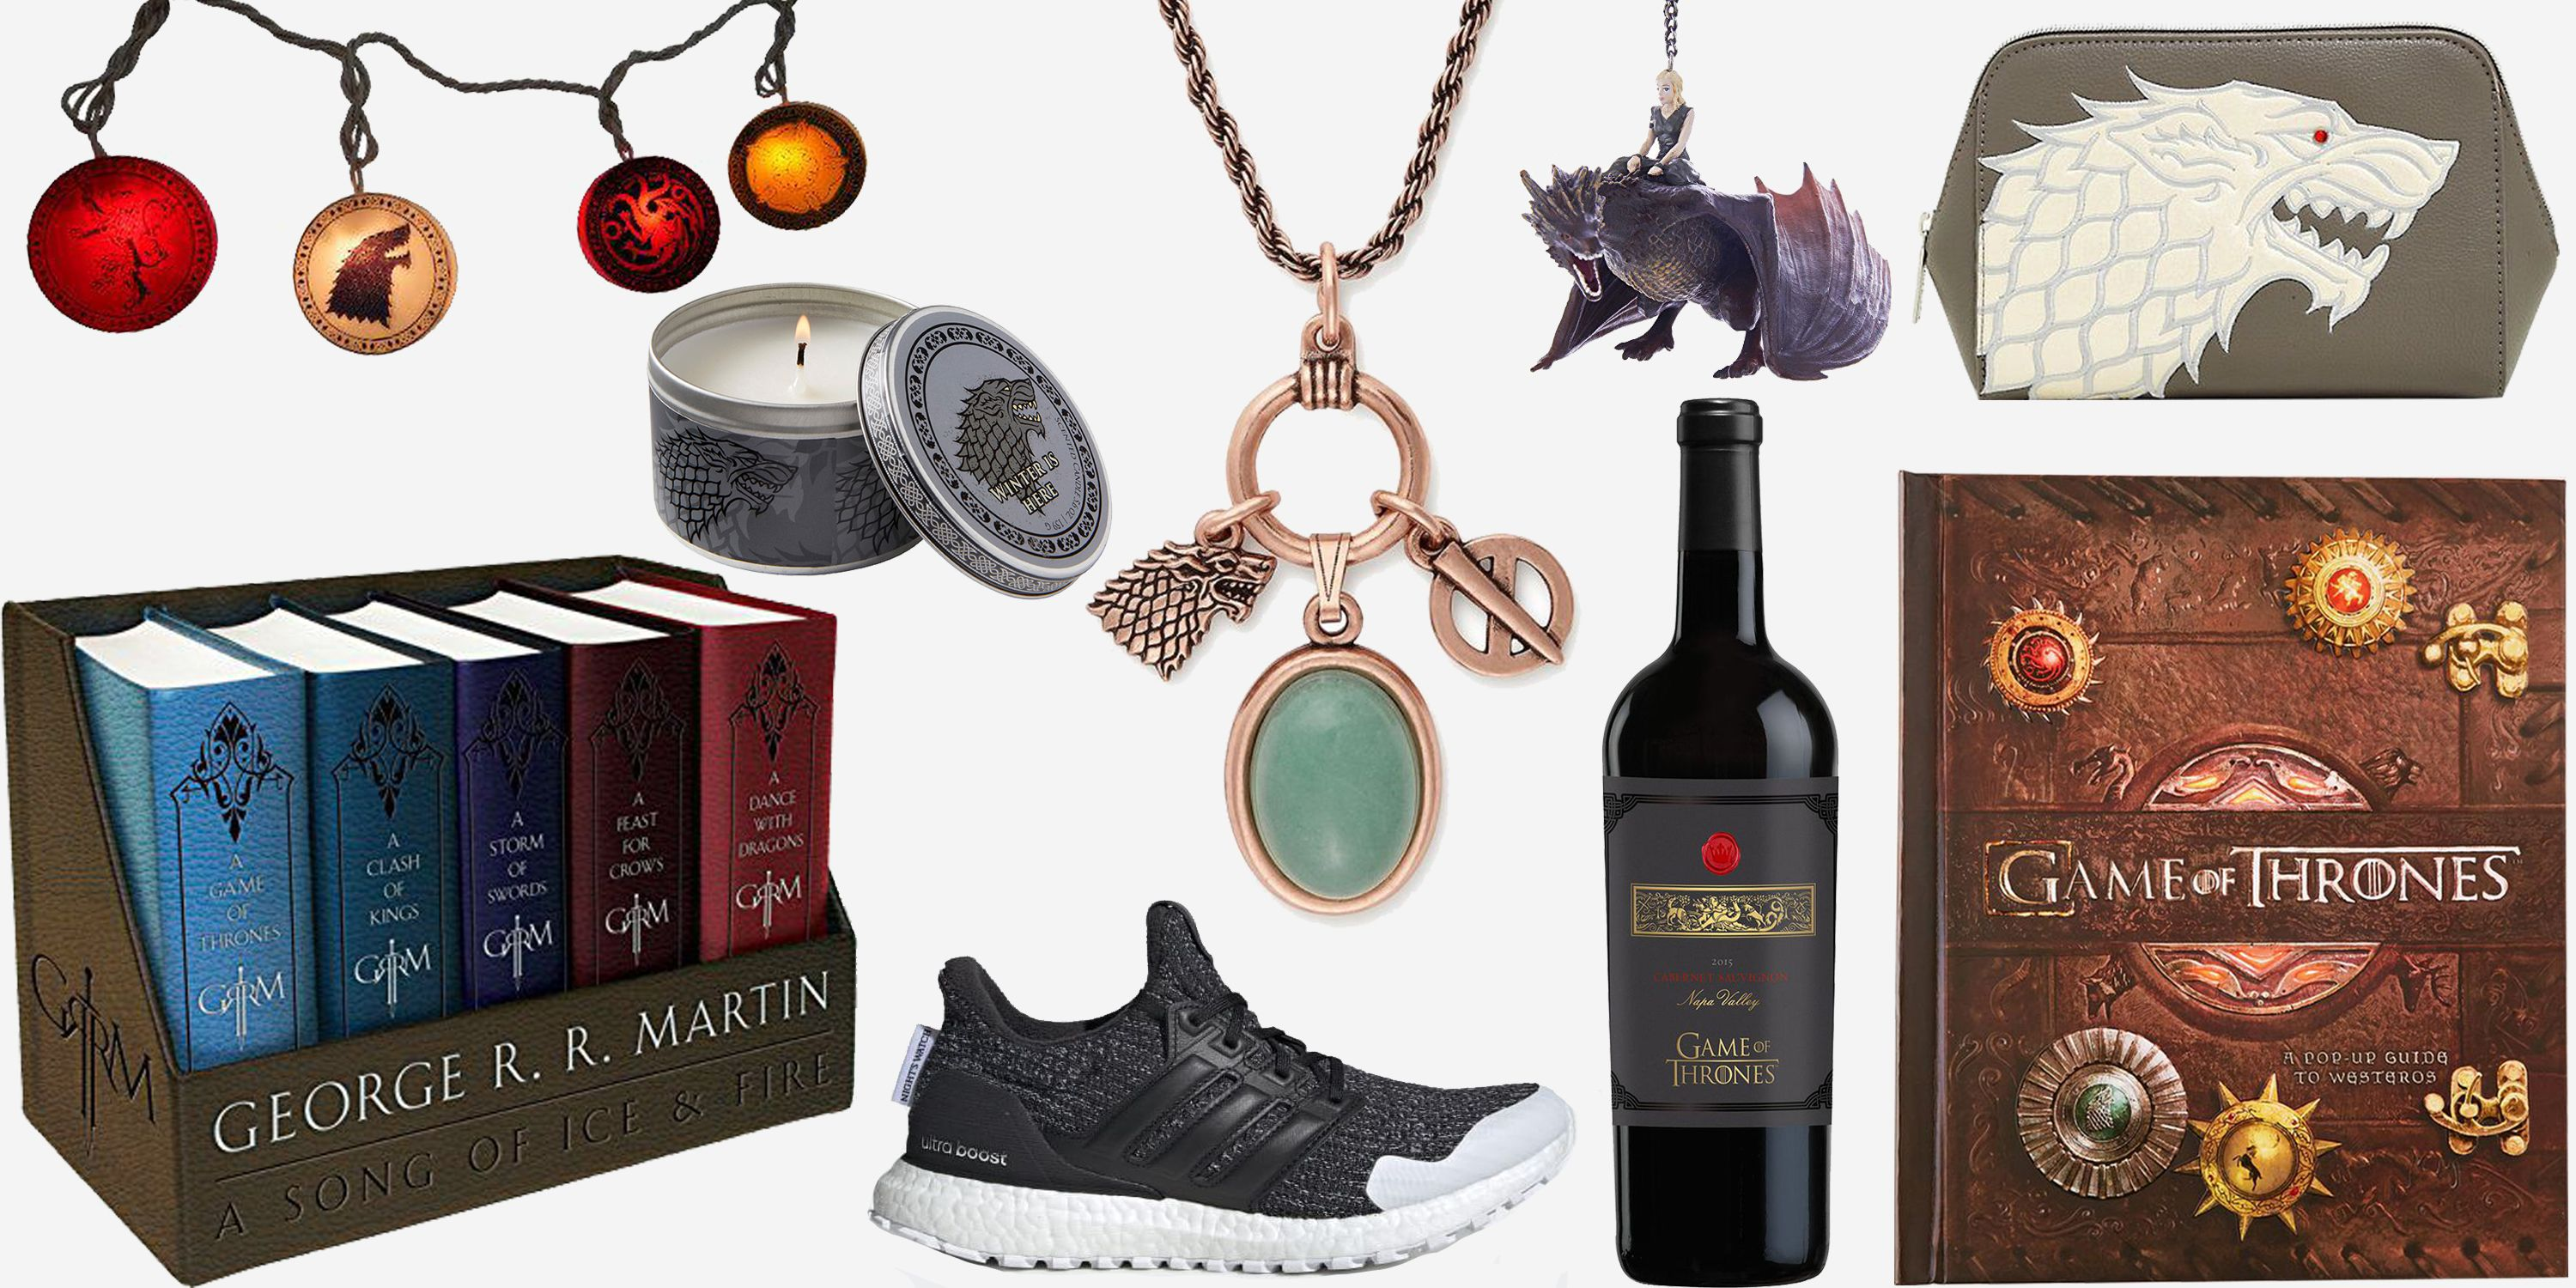 44 Best Game of Thrones Gifts 2019 Cool GoT Merchandise to